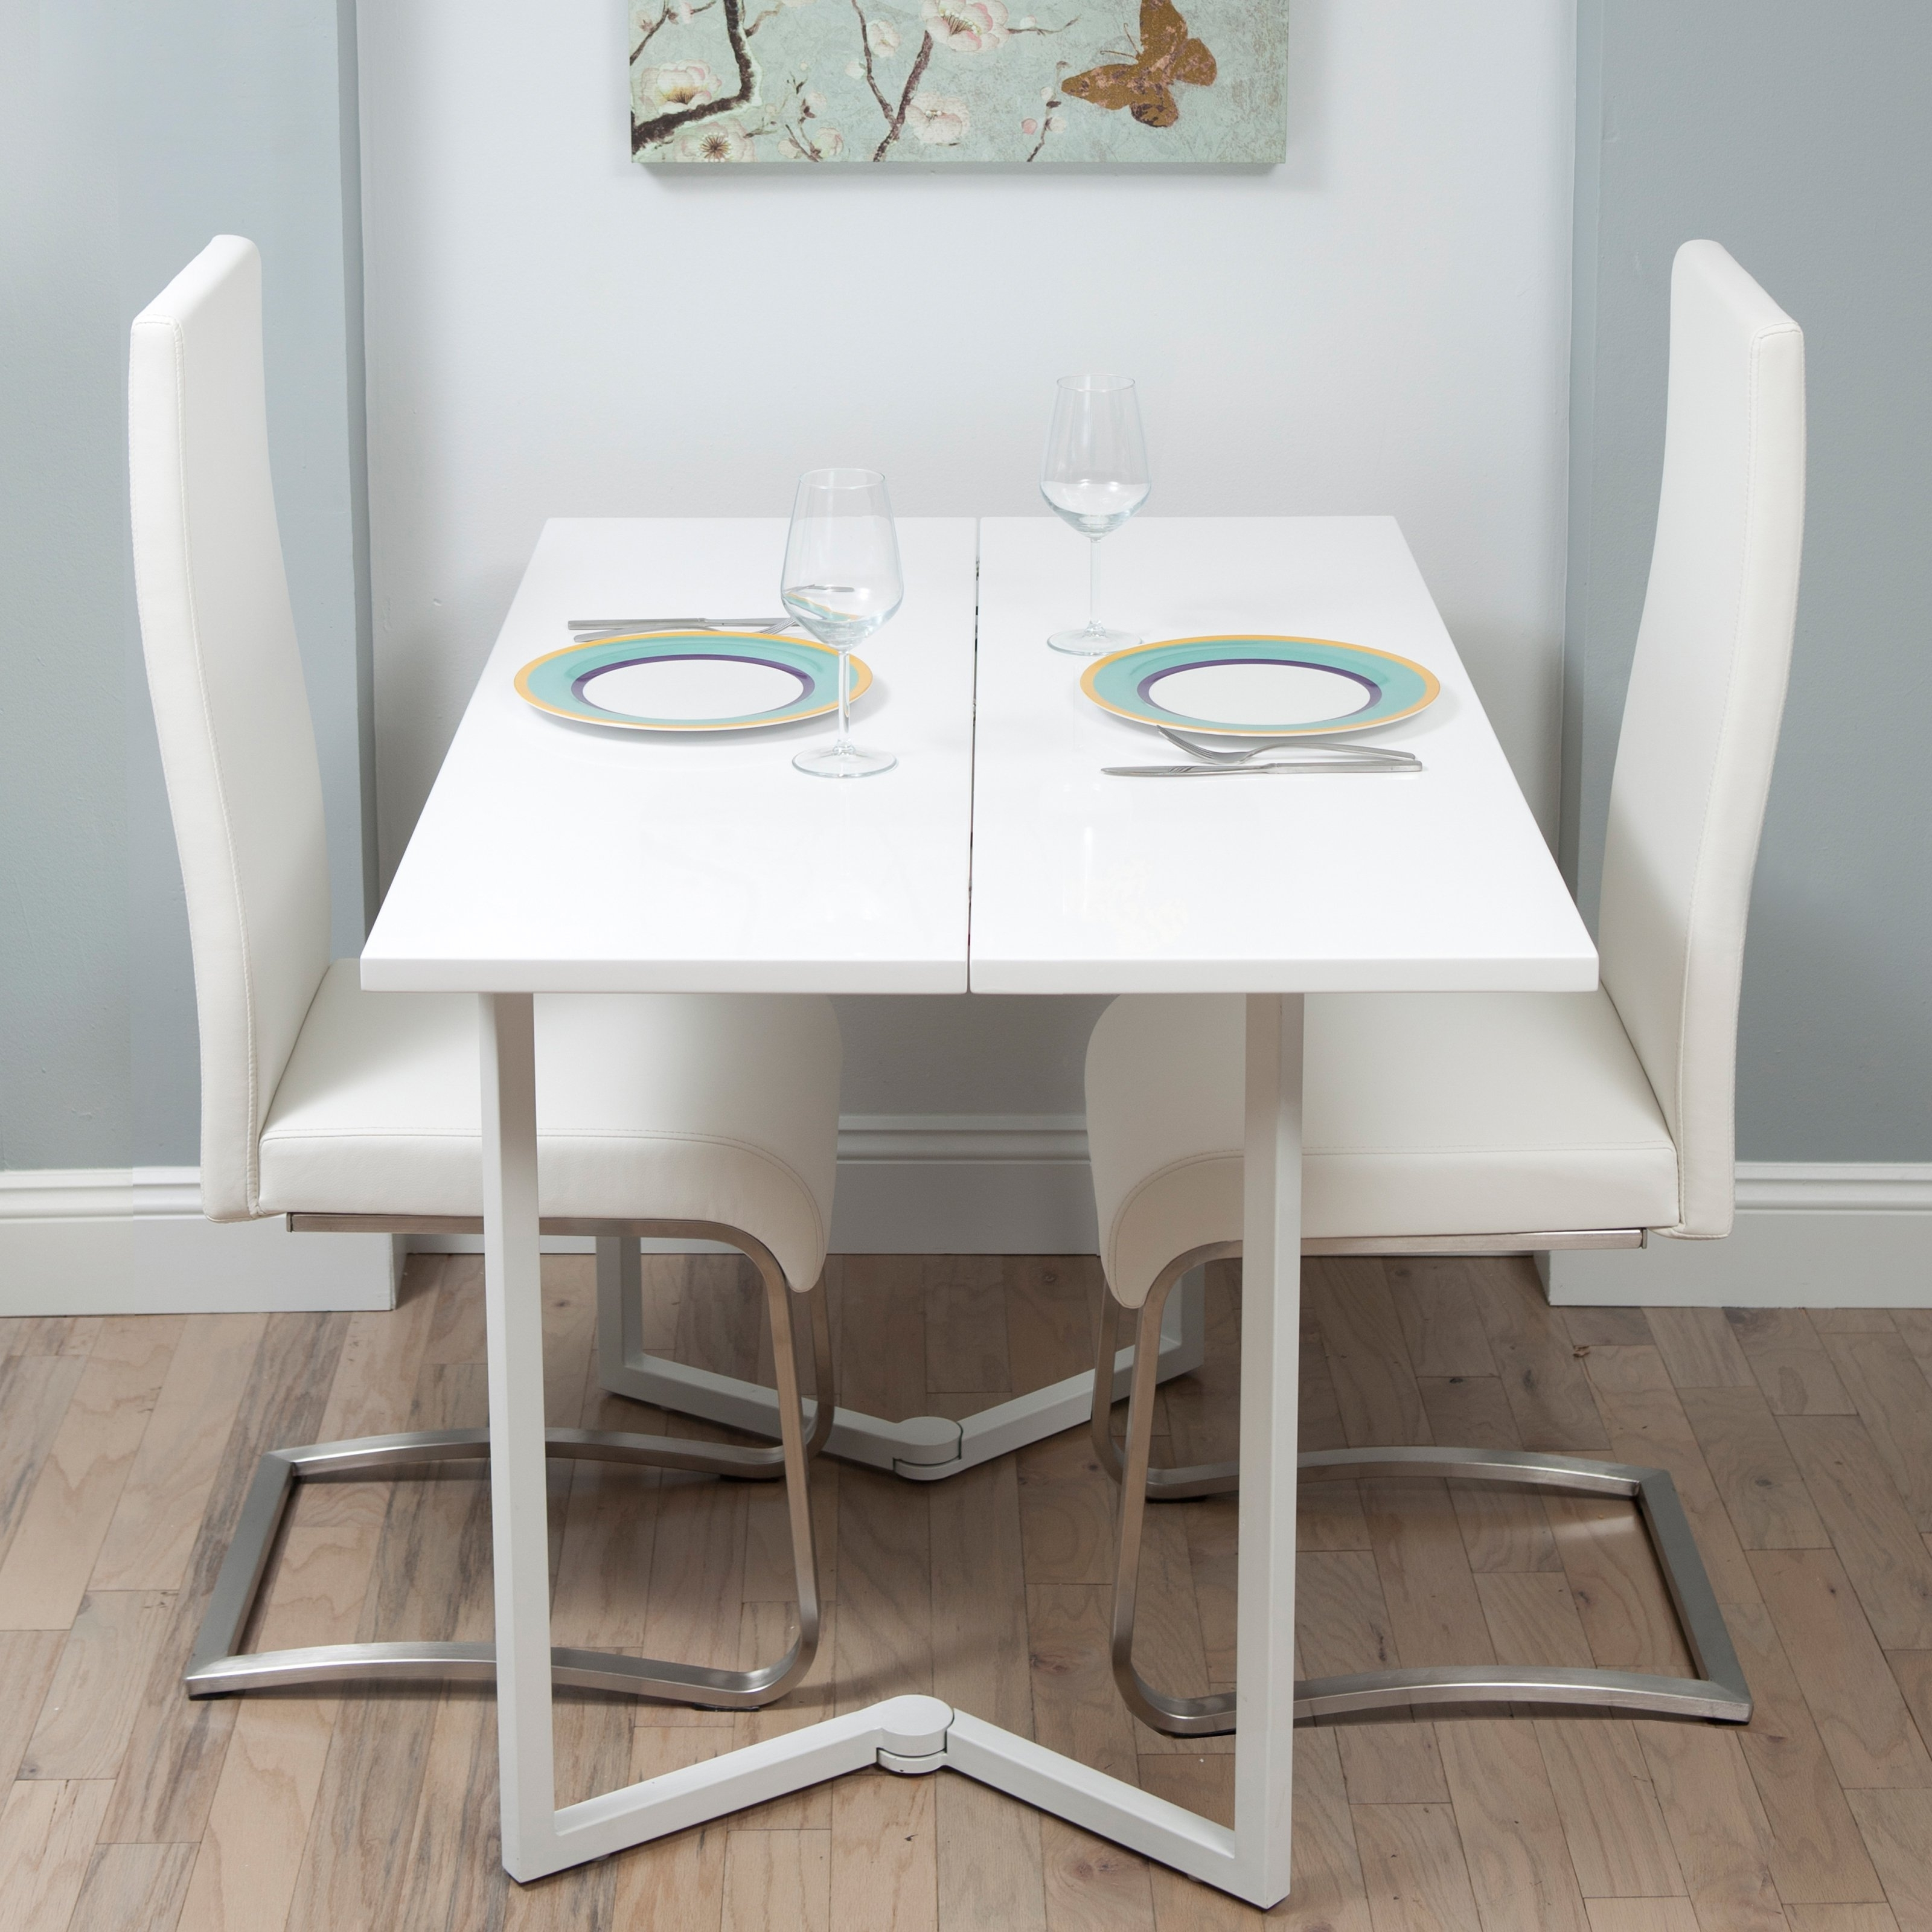 Most Recent Dining Tables With Fold Away Chairs Throughout Ikea Norden Dining Table Ikea Norden Dining Table Instructions (View 15 of 25)